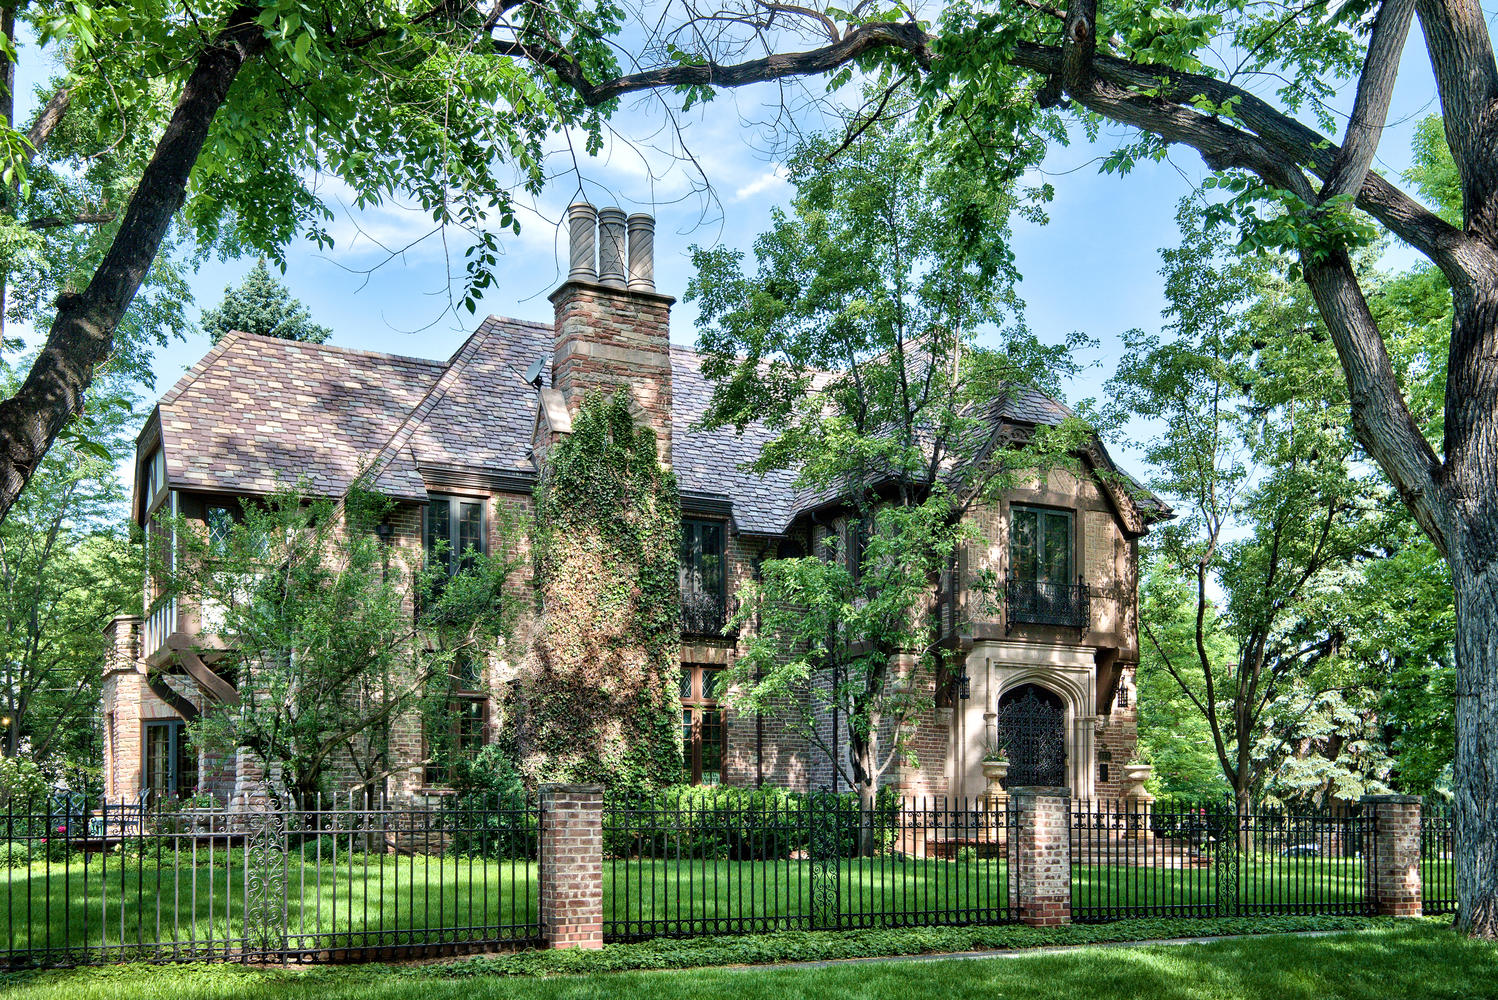 Villa per Vendita alle ore Spectacular Tudor on a Beautiful Half Acre in Historic Denver Country Club 177 Humboldt Street Country Club, Denver, Colorado, 80218 Stati Uniti